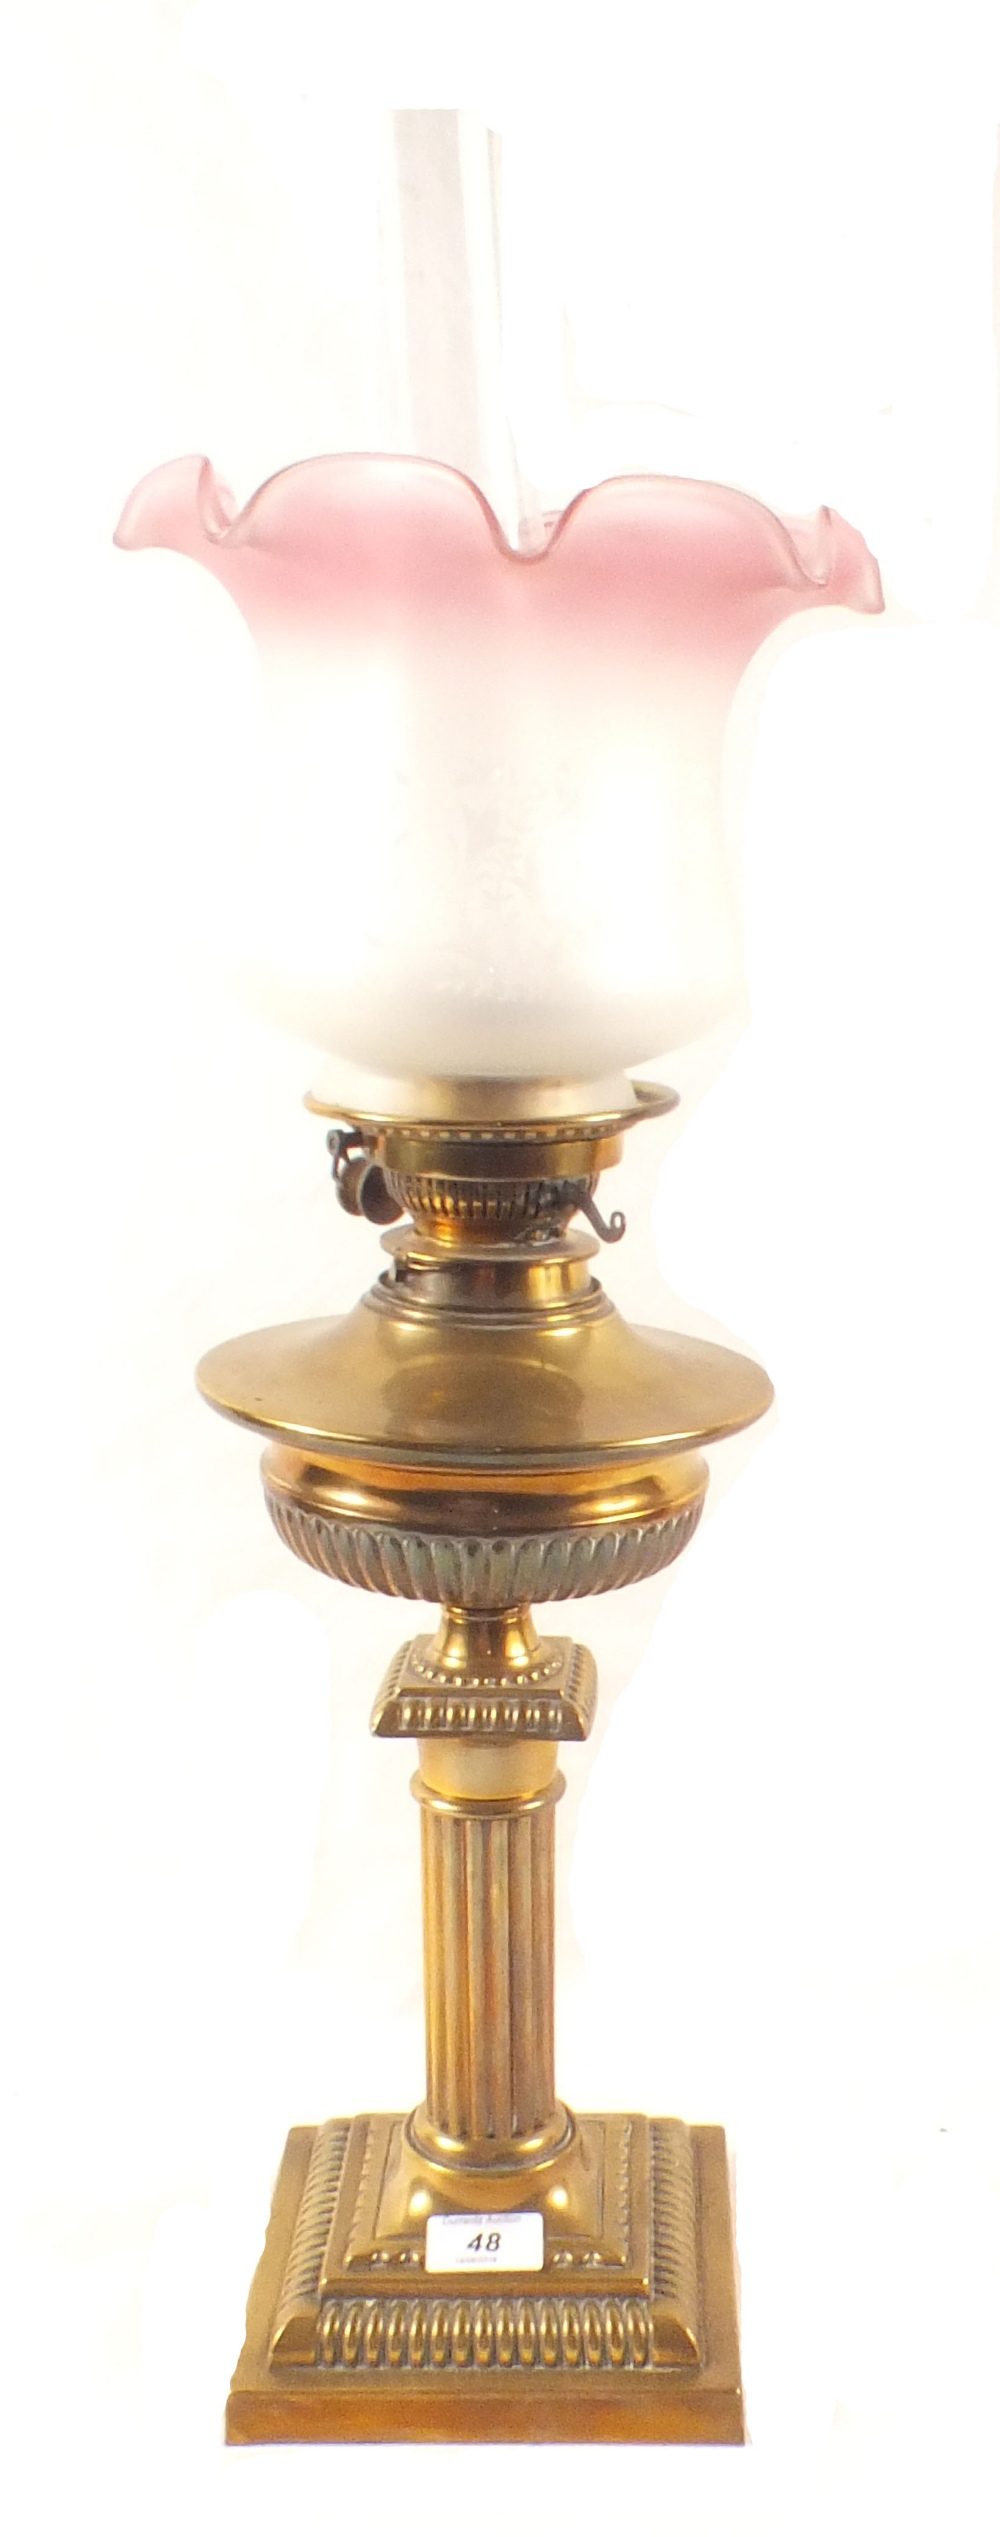 Lot 48 - A brass column oil lamp with etched glass shade